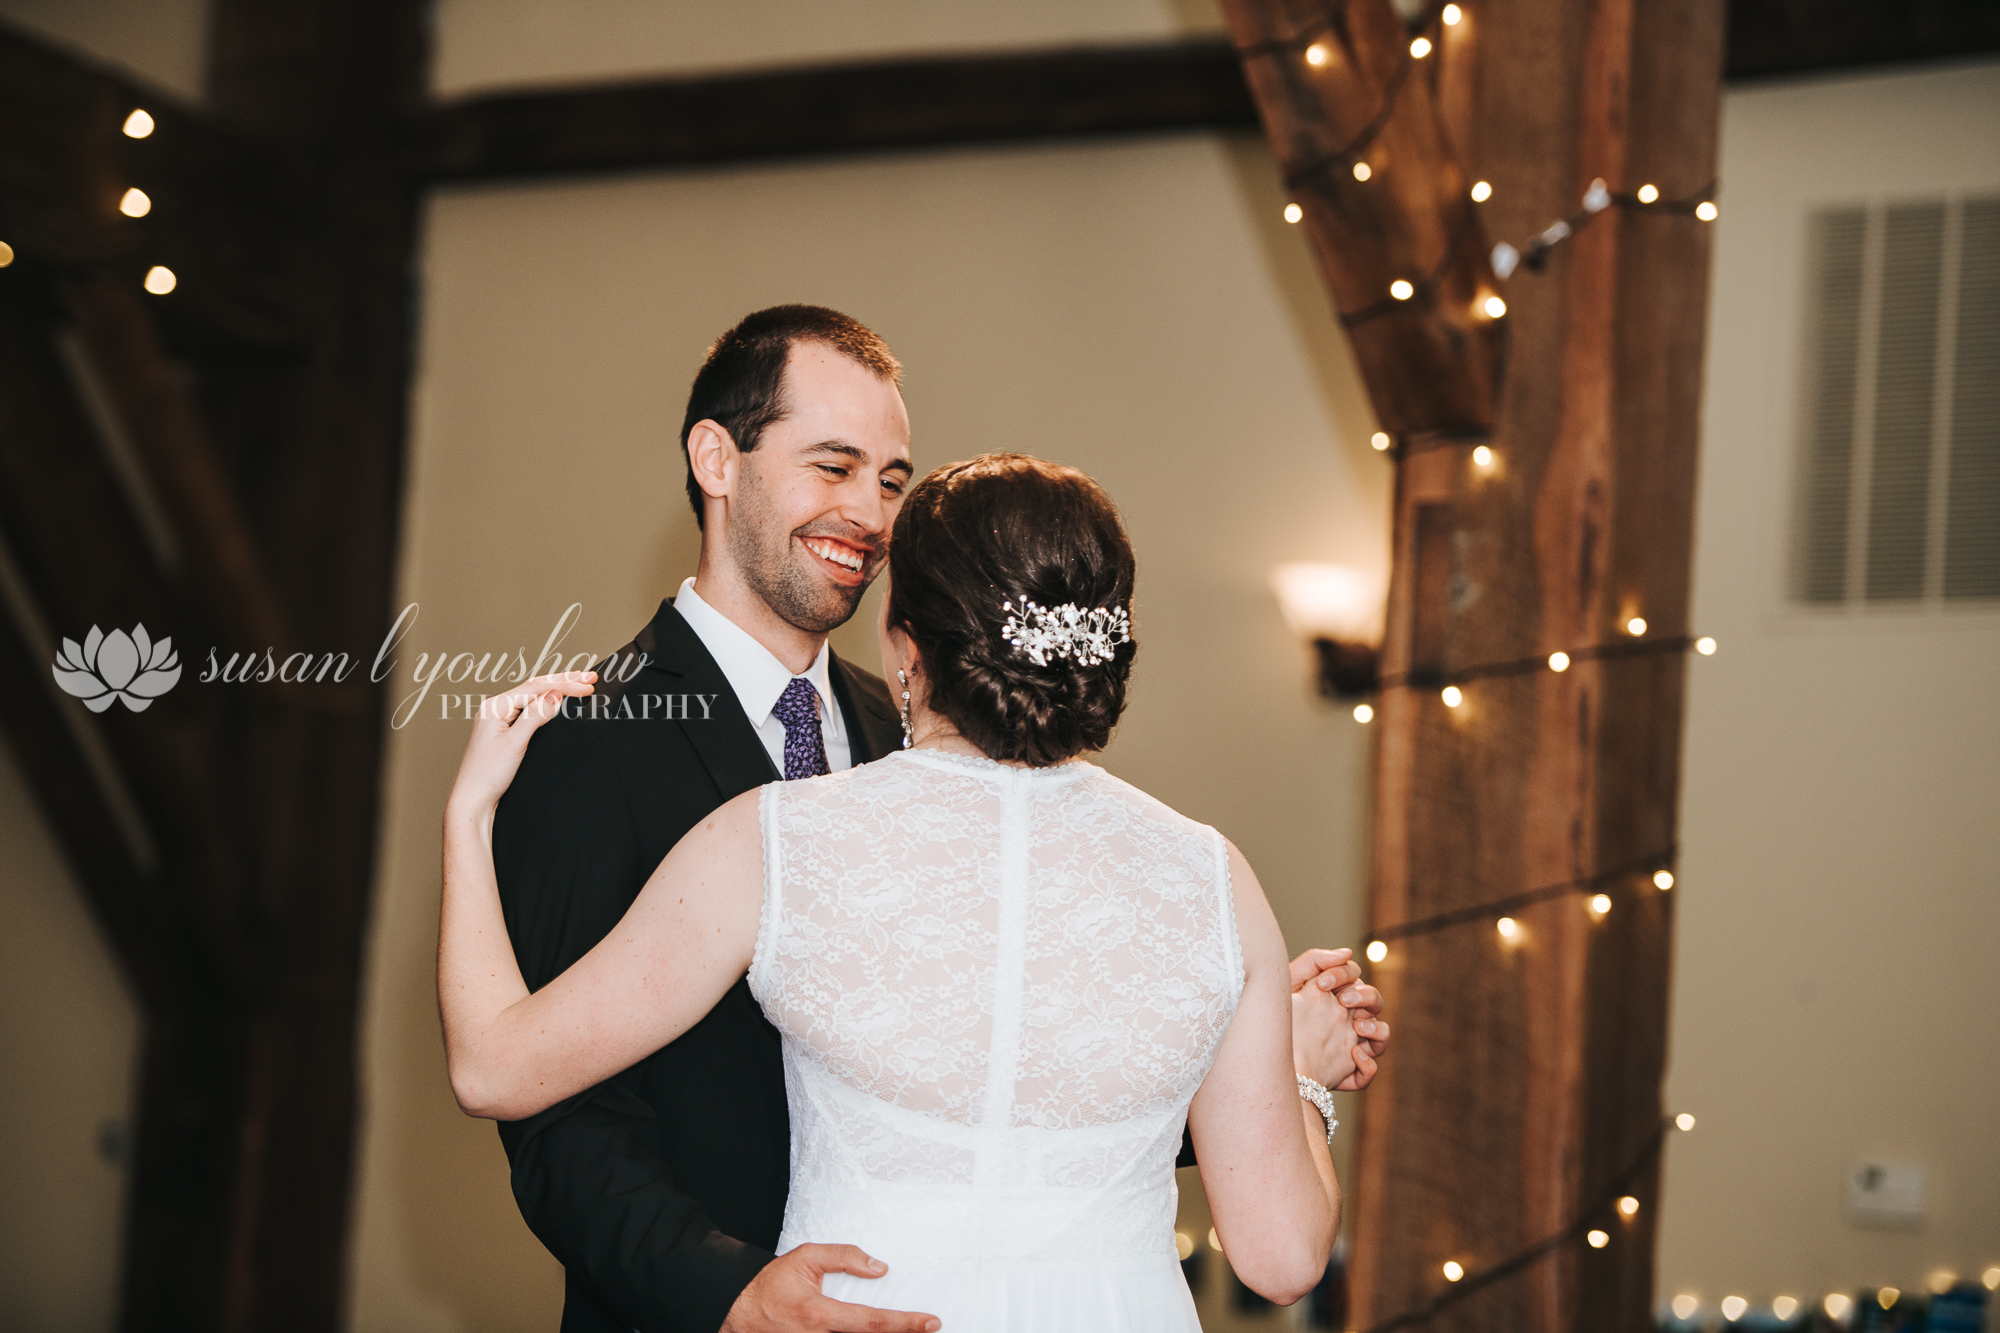 Adena and  Erik Wedding 05-17-2019 SLY Photography-97.jpg